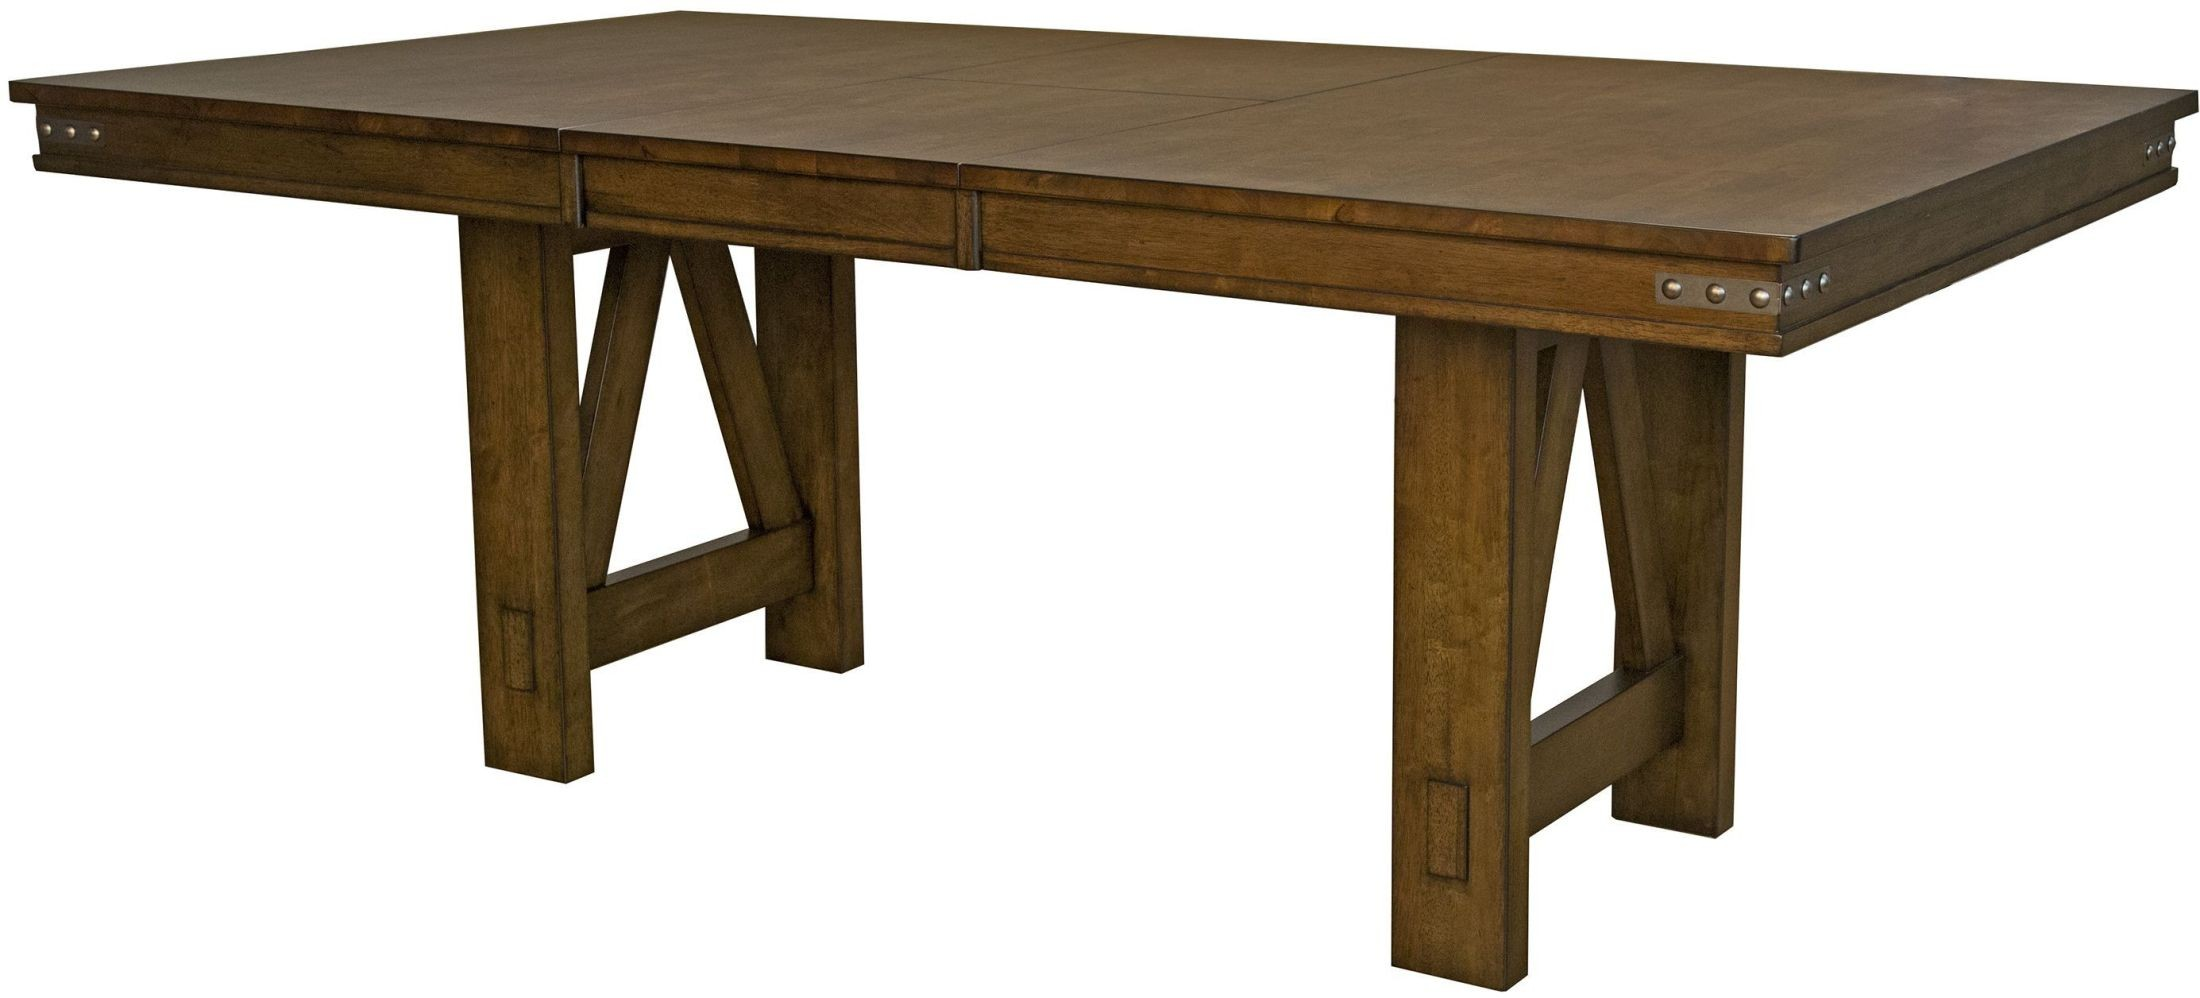 eastwood rich tobacco 78 extendable rectangular trestle dining table from a america coleman. Black Bedroom Furniture Sets. Home Design Ideas